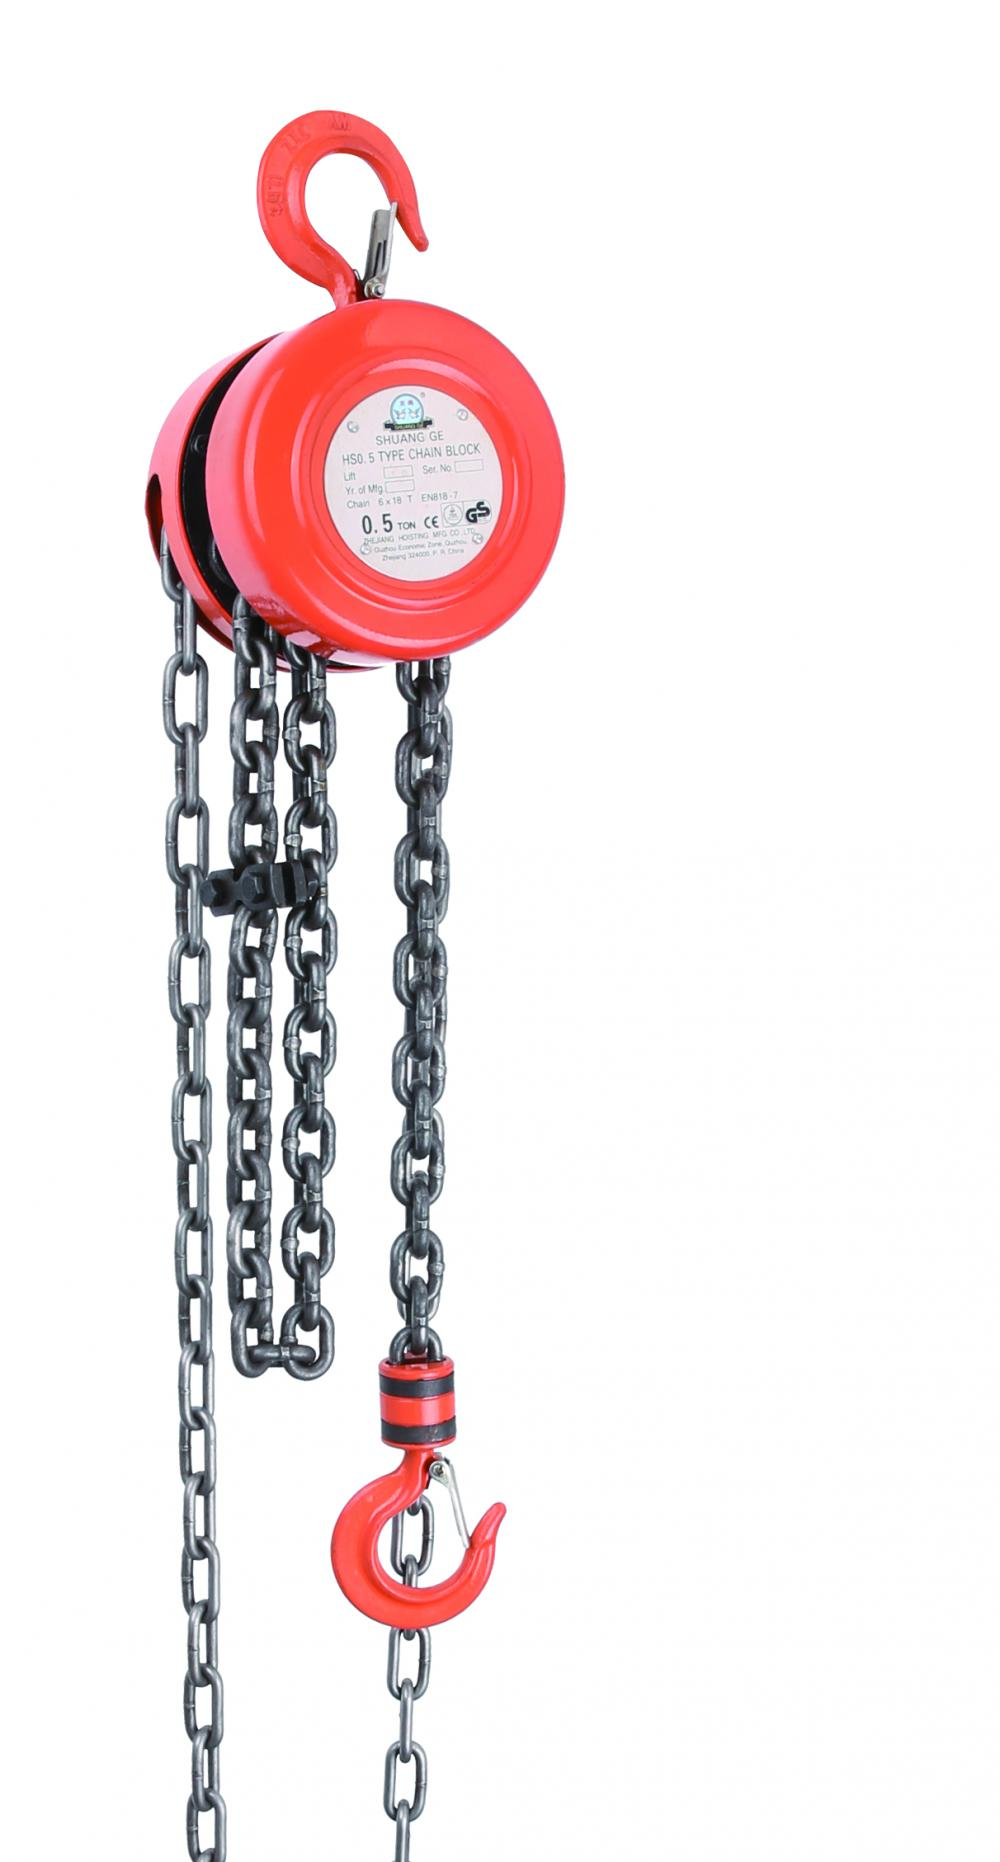 HS TYPE CHAIN HOIST